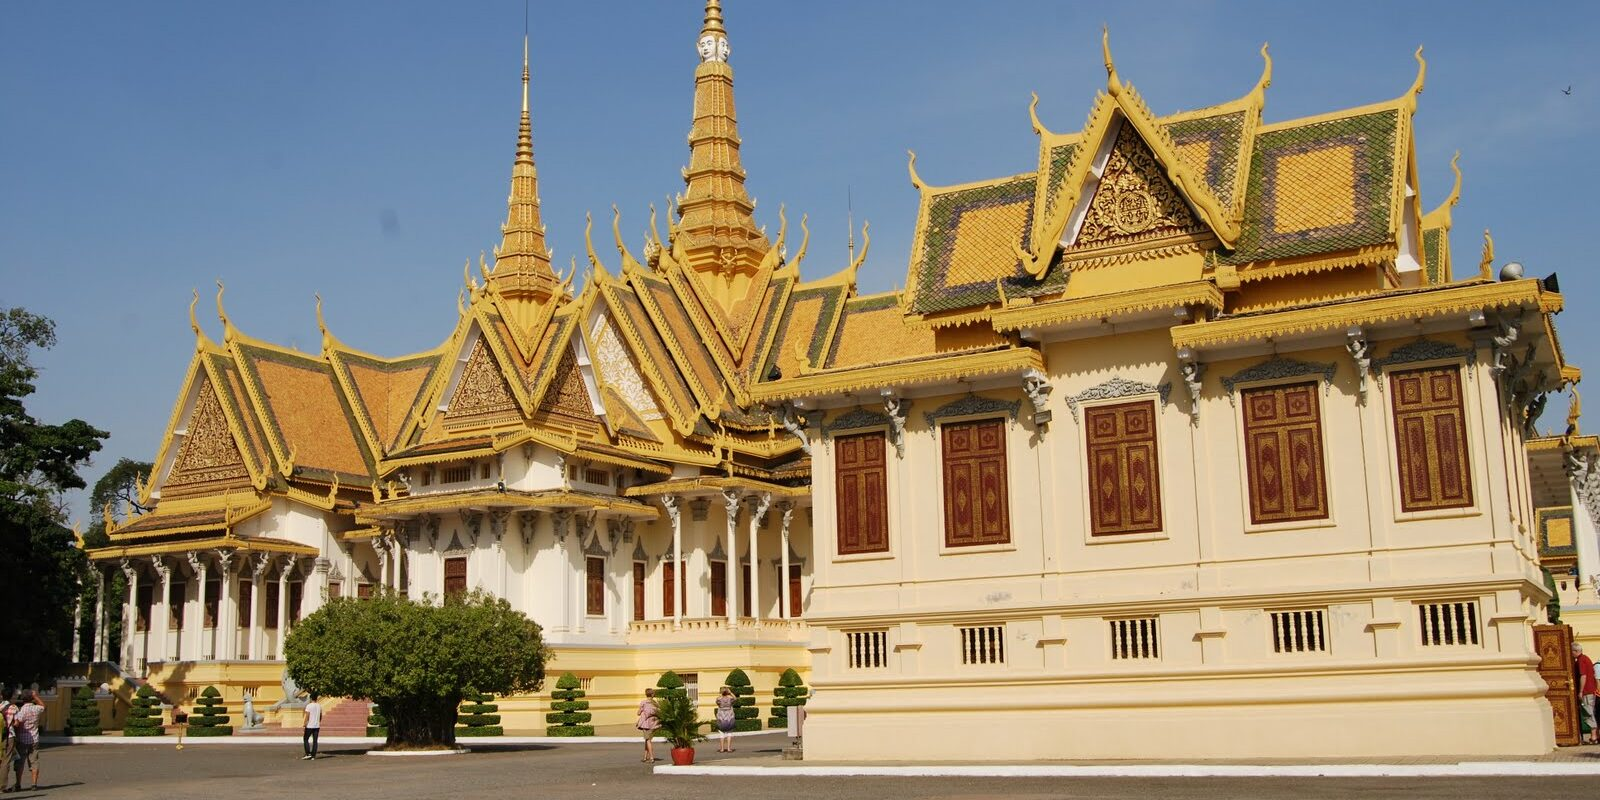 Royal Palace grounds, Phnom Penh